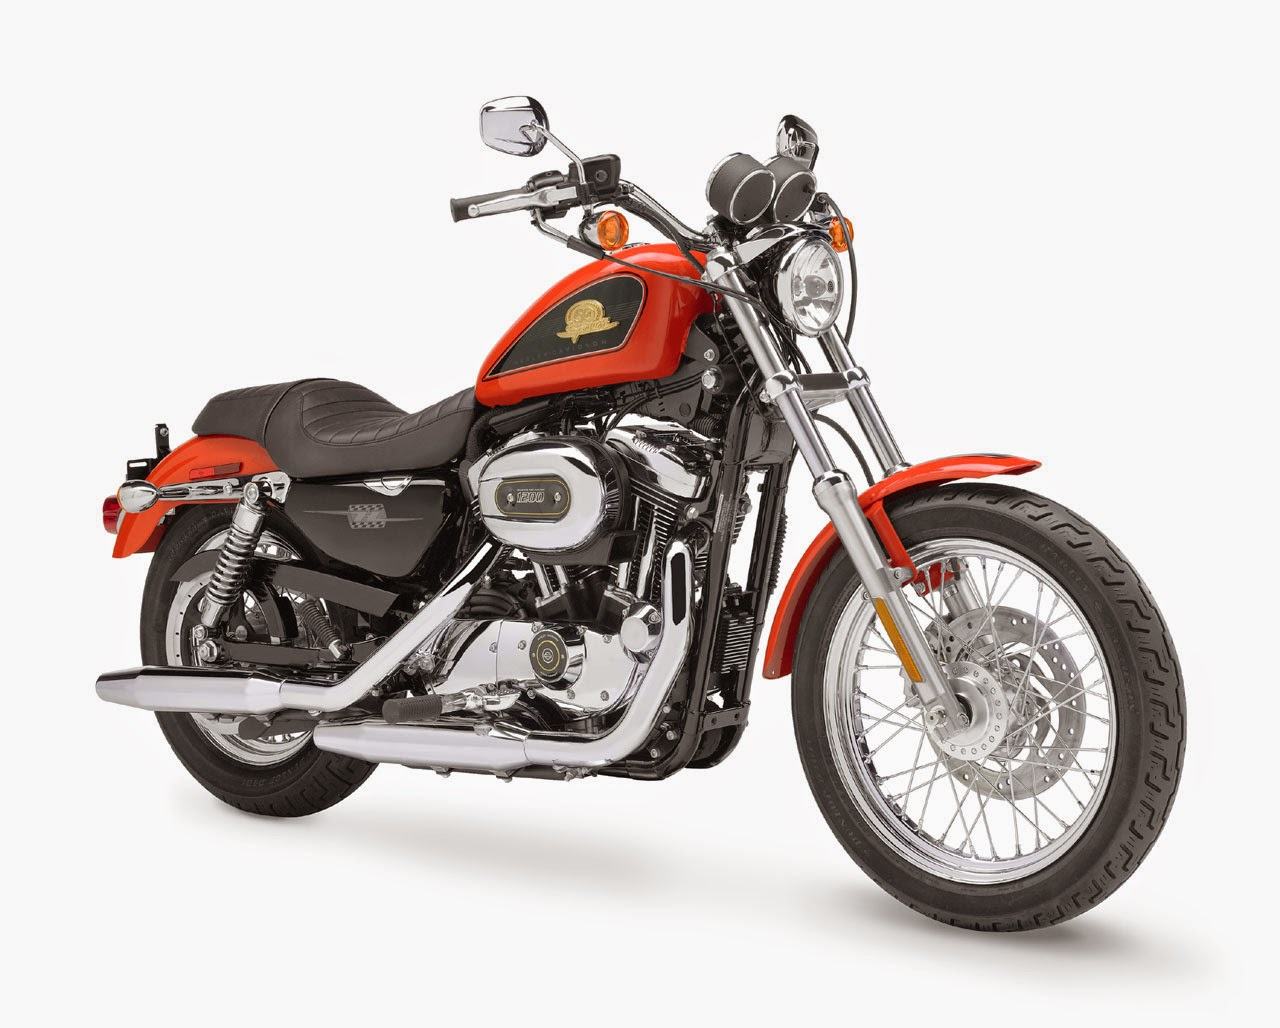 2007 sportster 1200l service manual open source user manual u2022 rh dramatic varieties com 2013 Harley-Davidson XL1200C 2009 sportster 1200 service manual